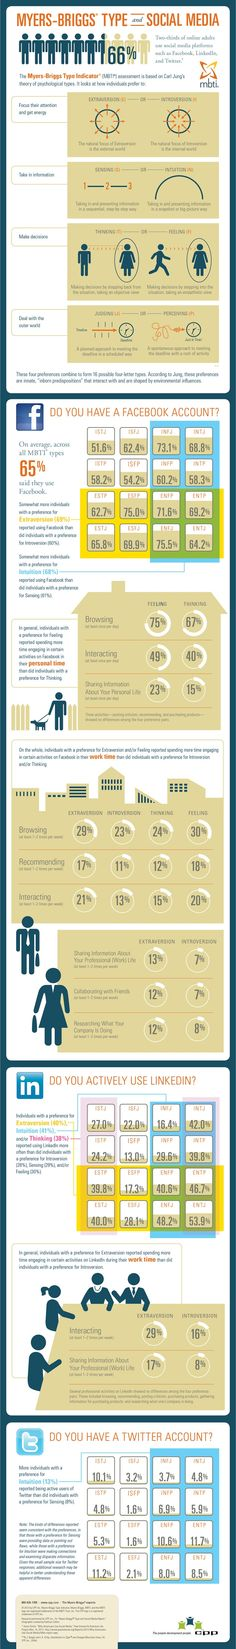 What Do Social Networks tell us about your Personality? #Infographic